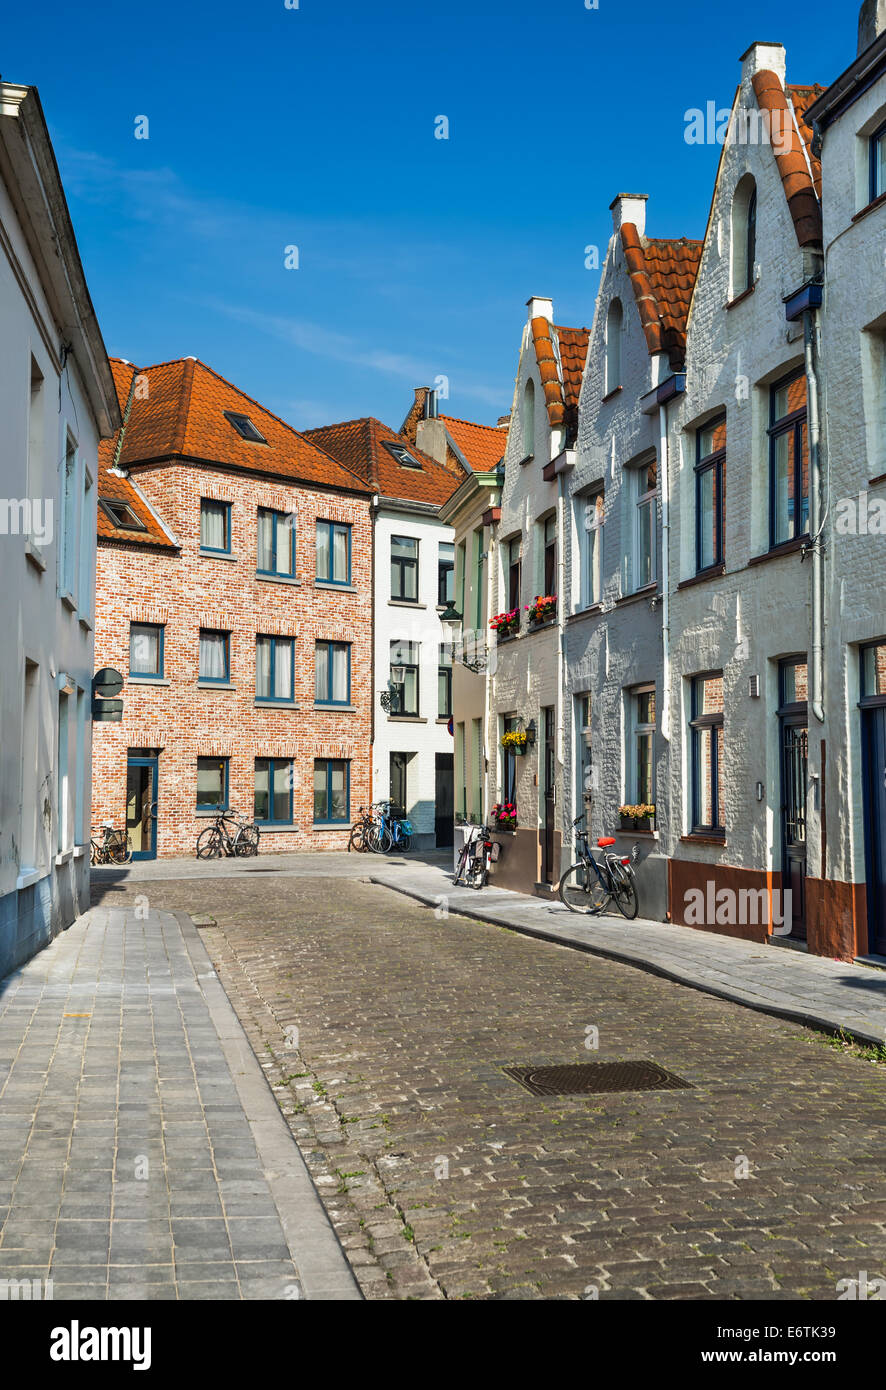 Medieval scenery with paved street and Belgium architecture houses in Bruges, landmark of Flanders. - Stock Image